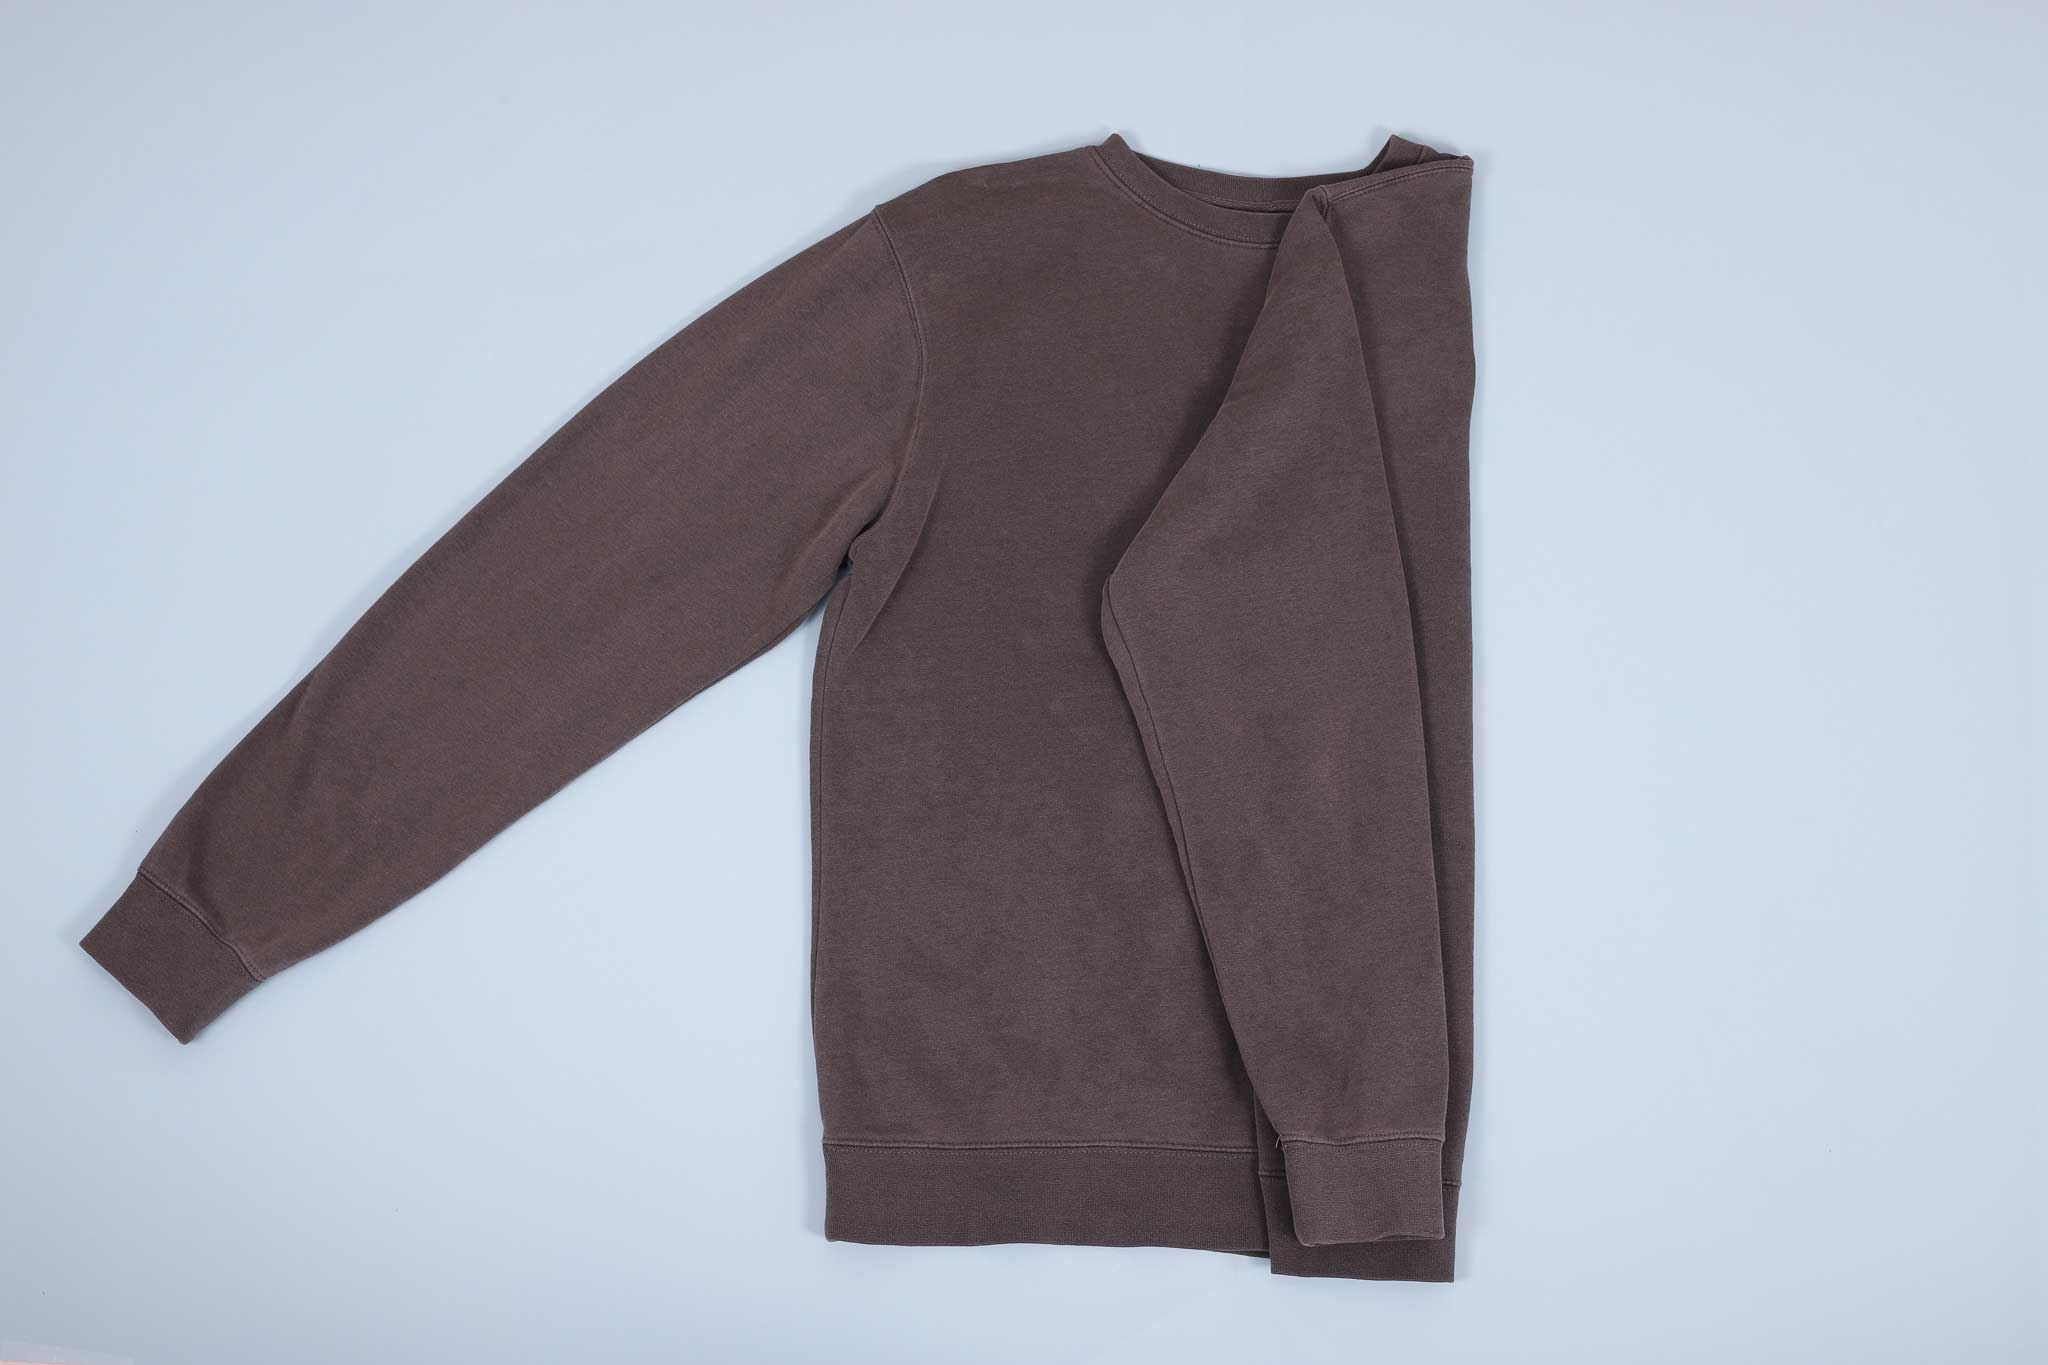 Grey sweater with sleeve folded in and then down towards the hem